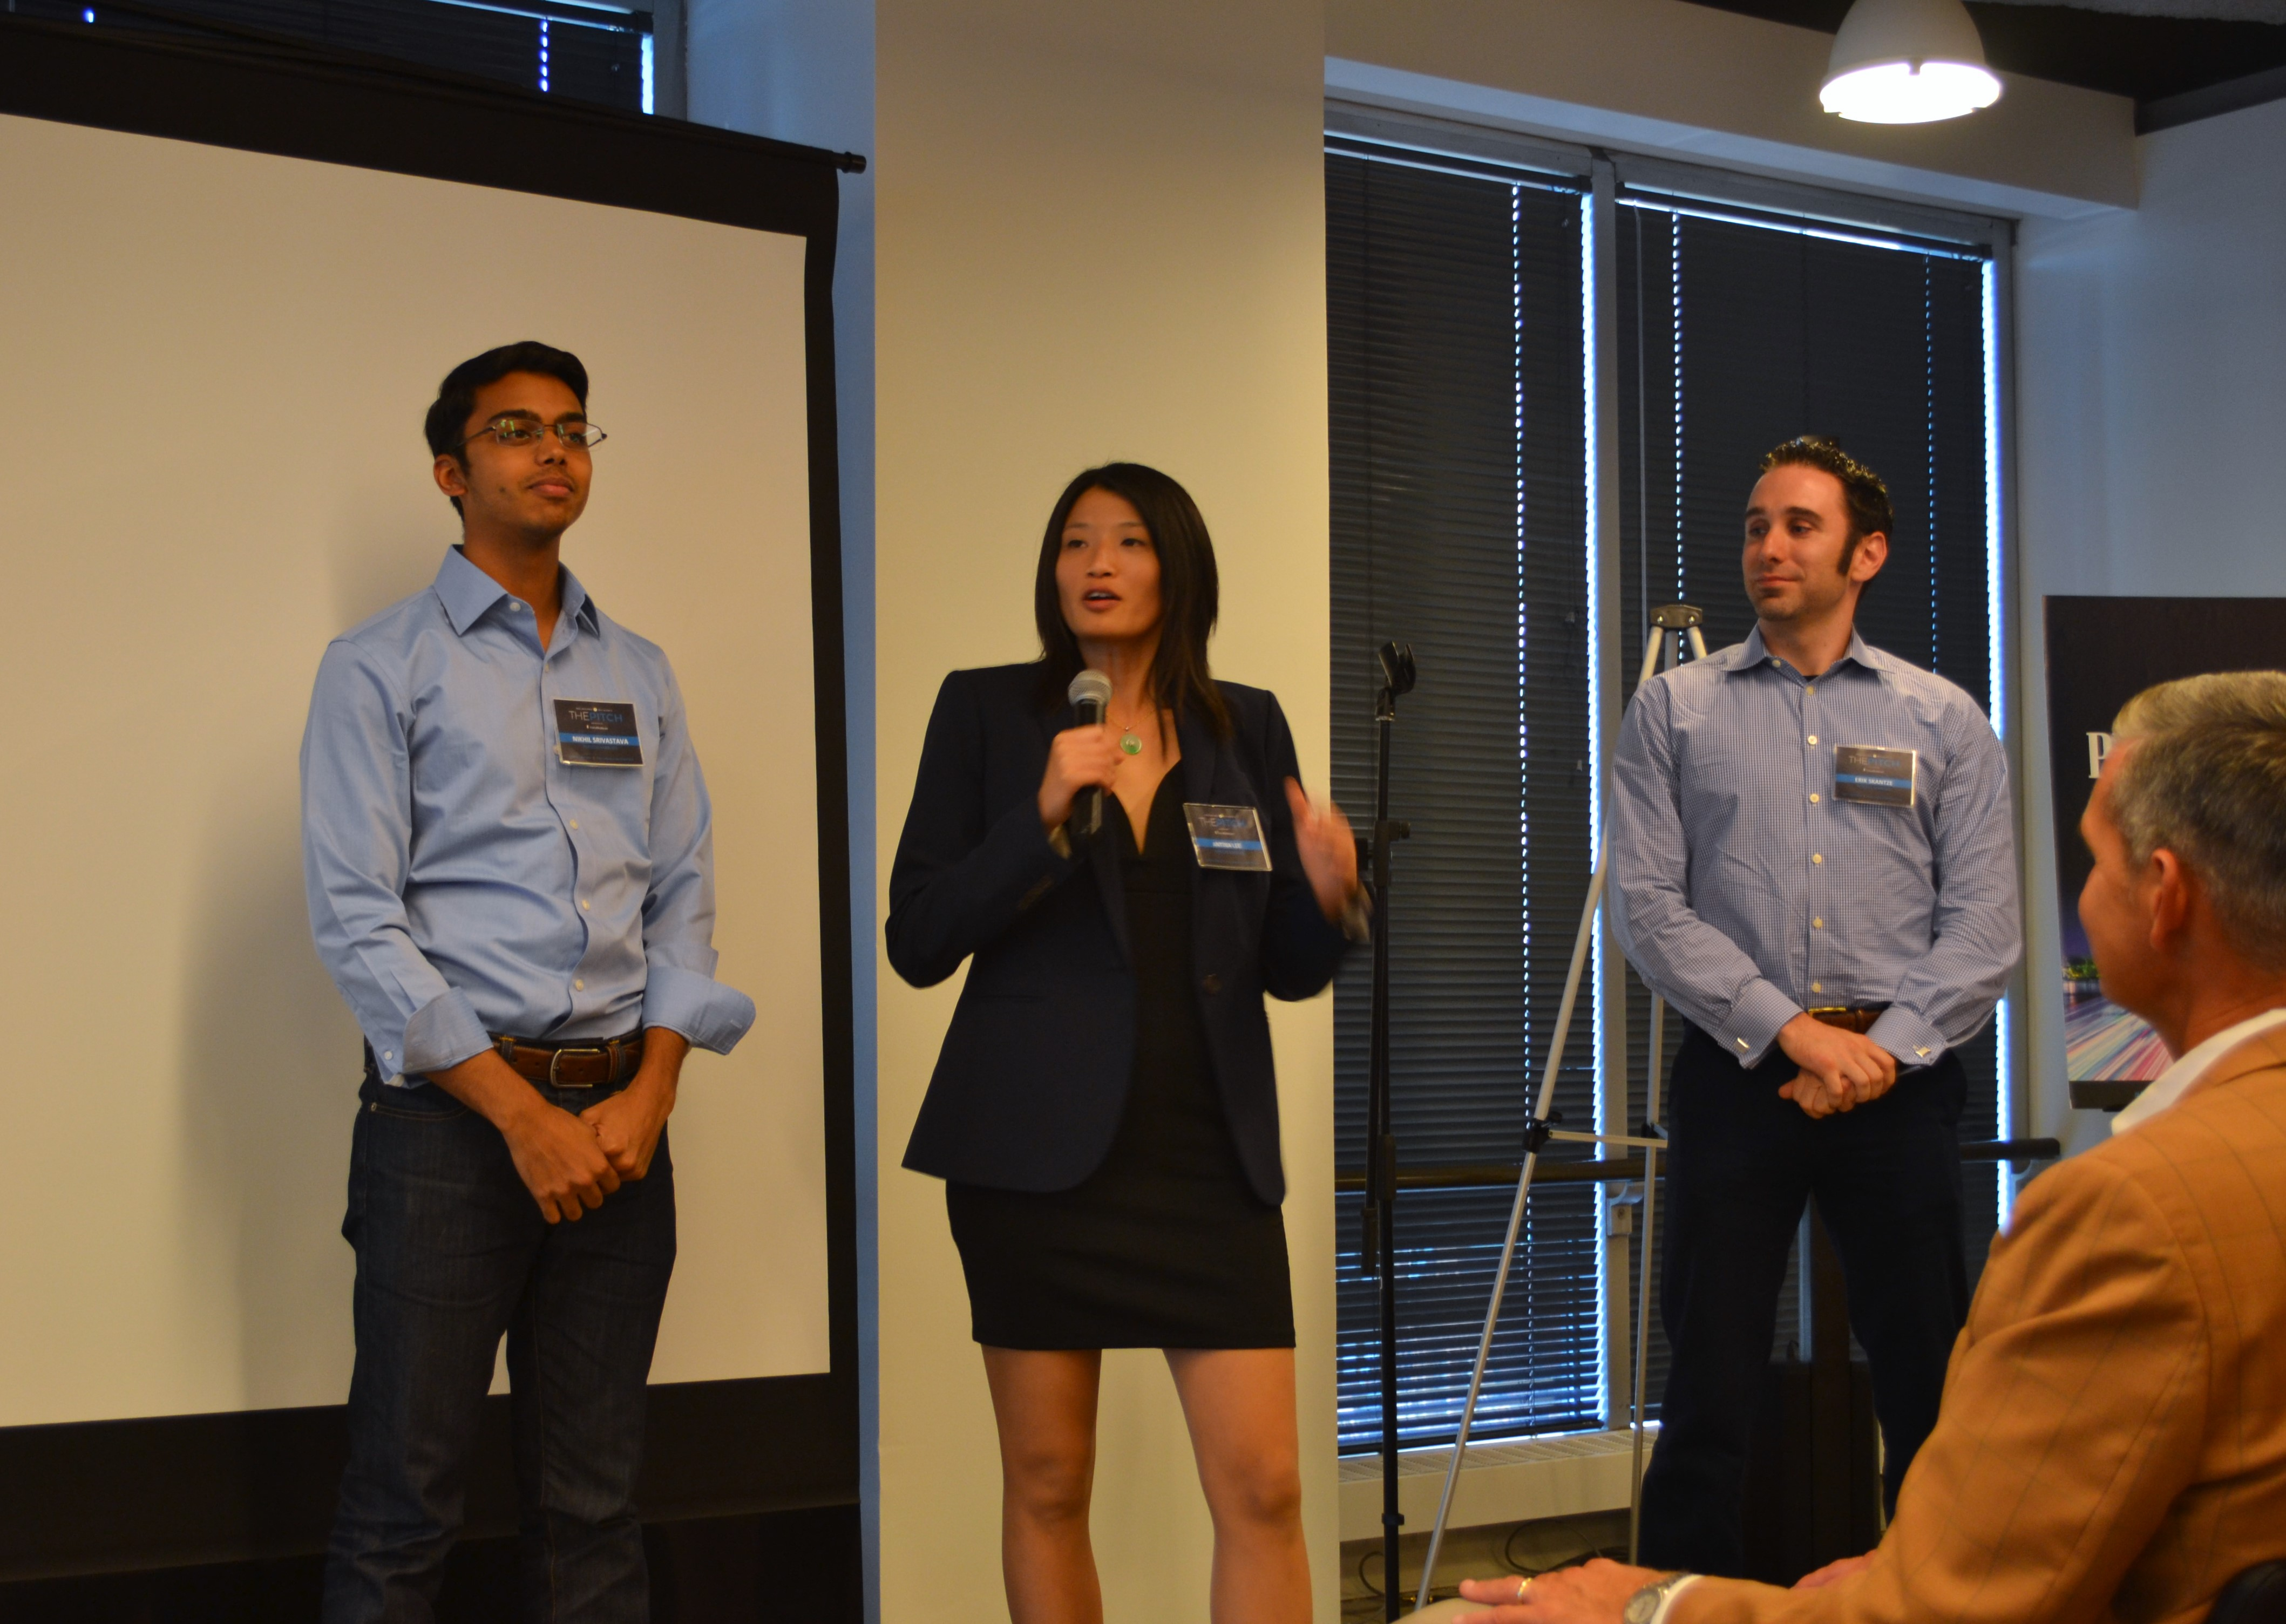 The Perseus Mirrors team tells the audience about their revolutionary smart mirror.